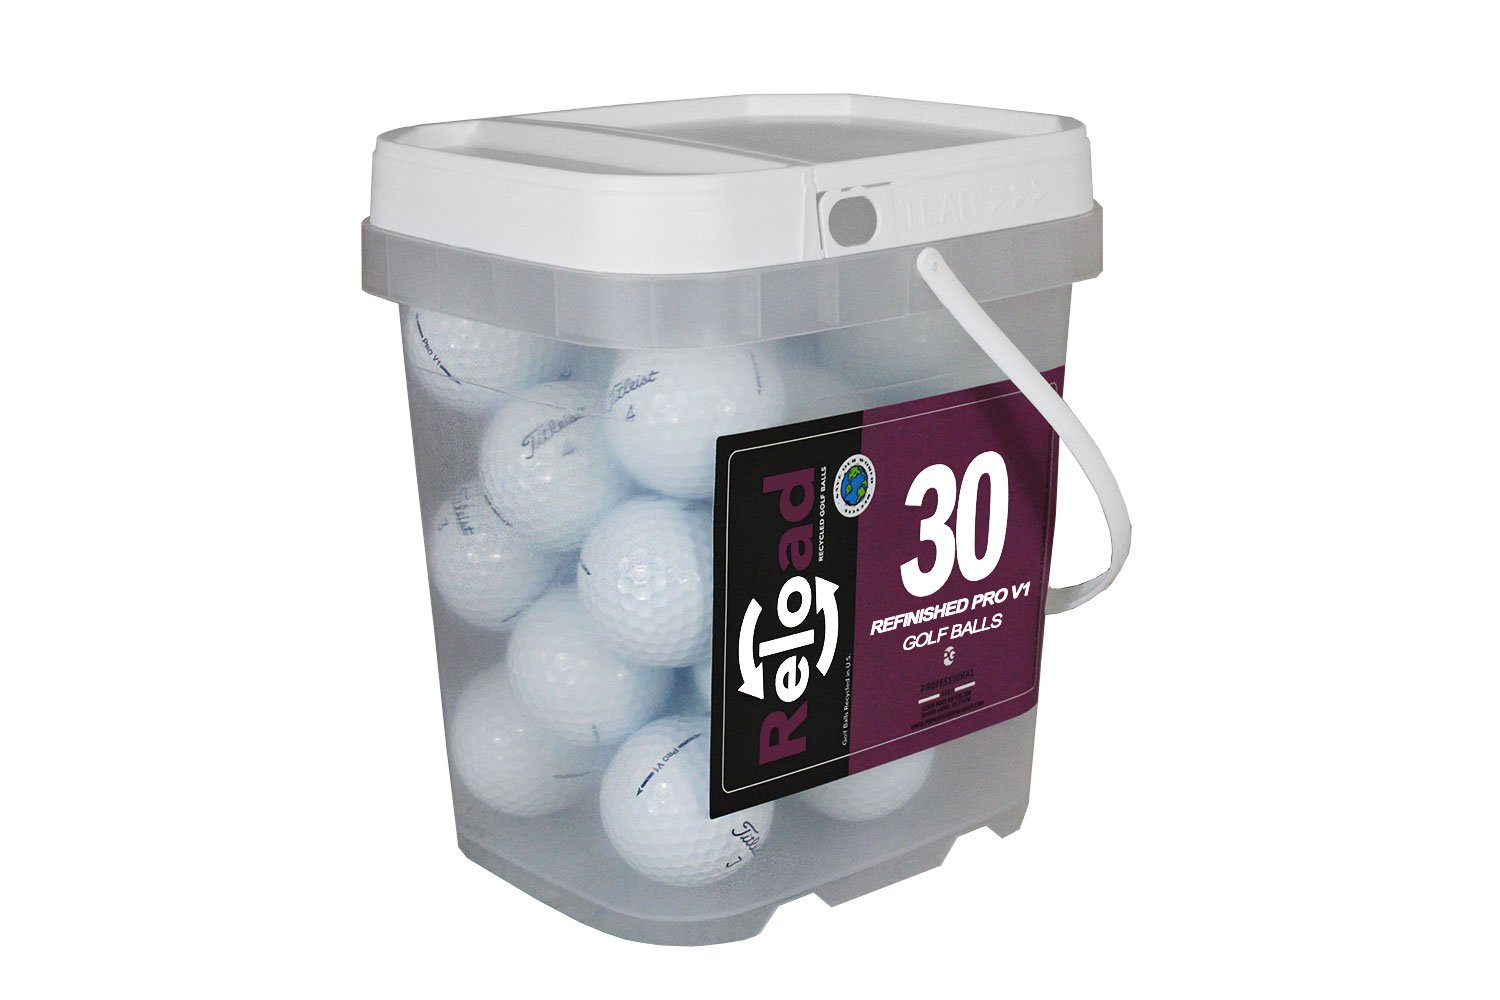 Reload Recycled Golf Balls Titleist Pro v1 Refurbished Golf Balls (30 Pack)